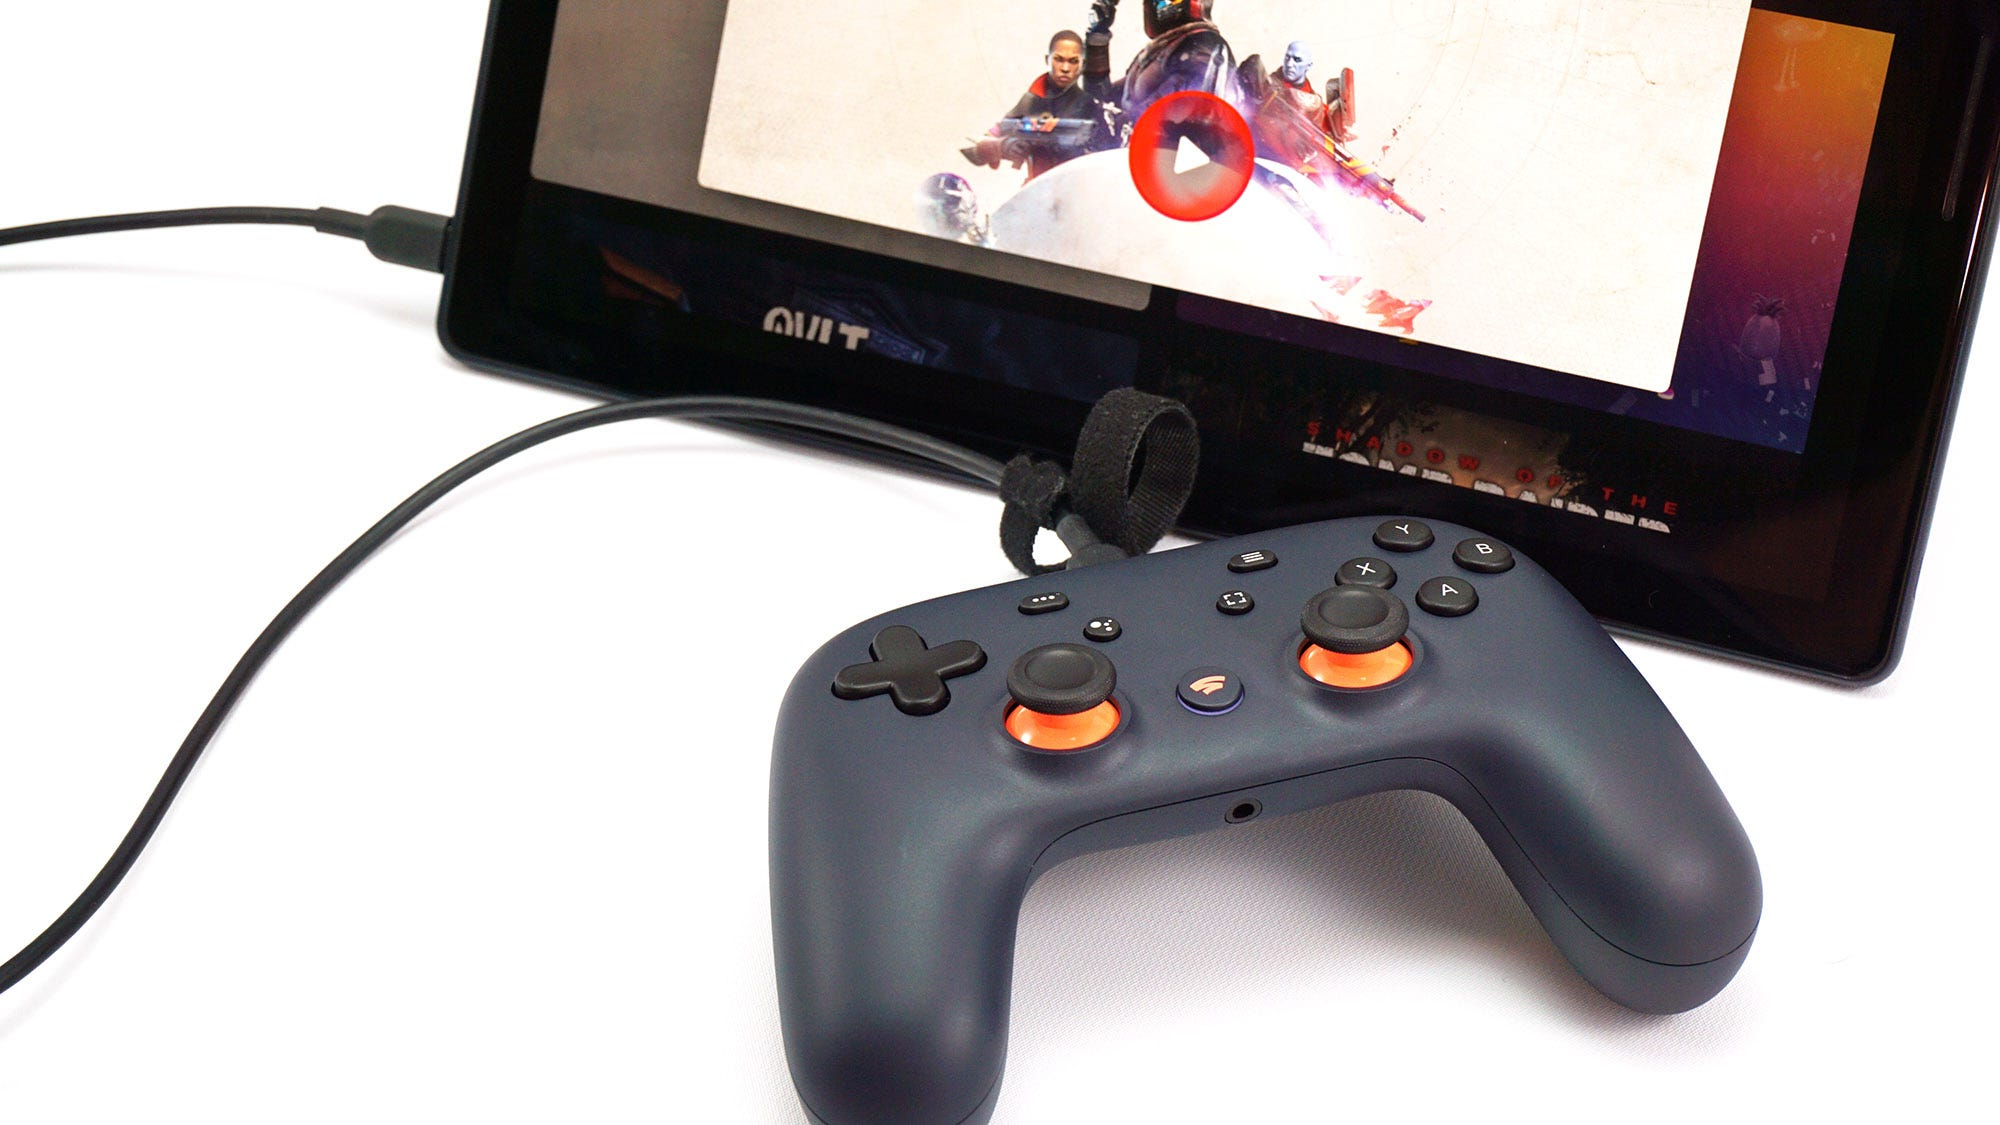 The Stadia controller plugged into a tablet.